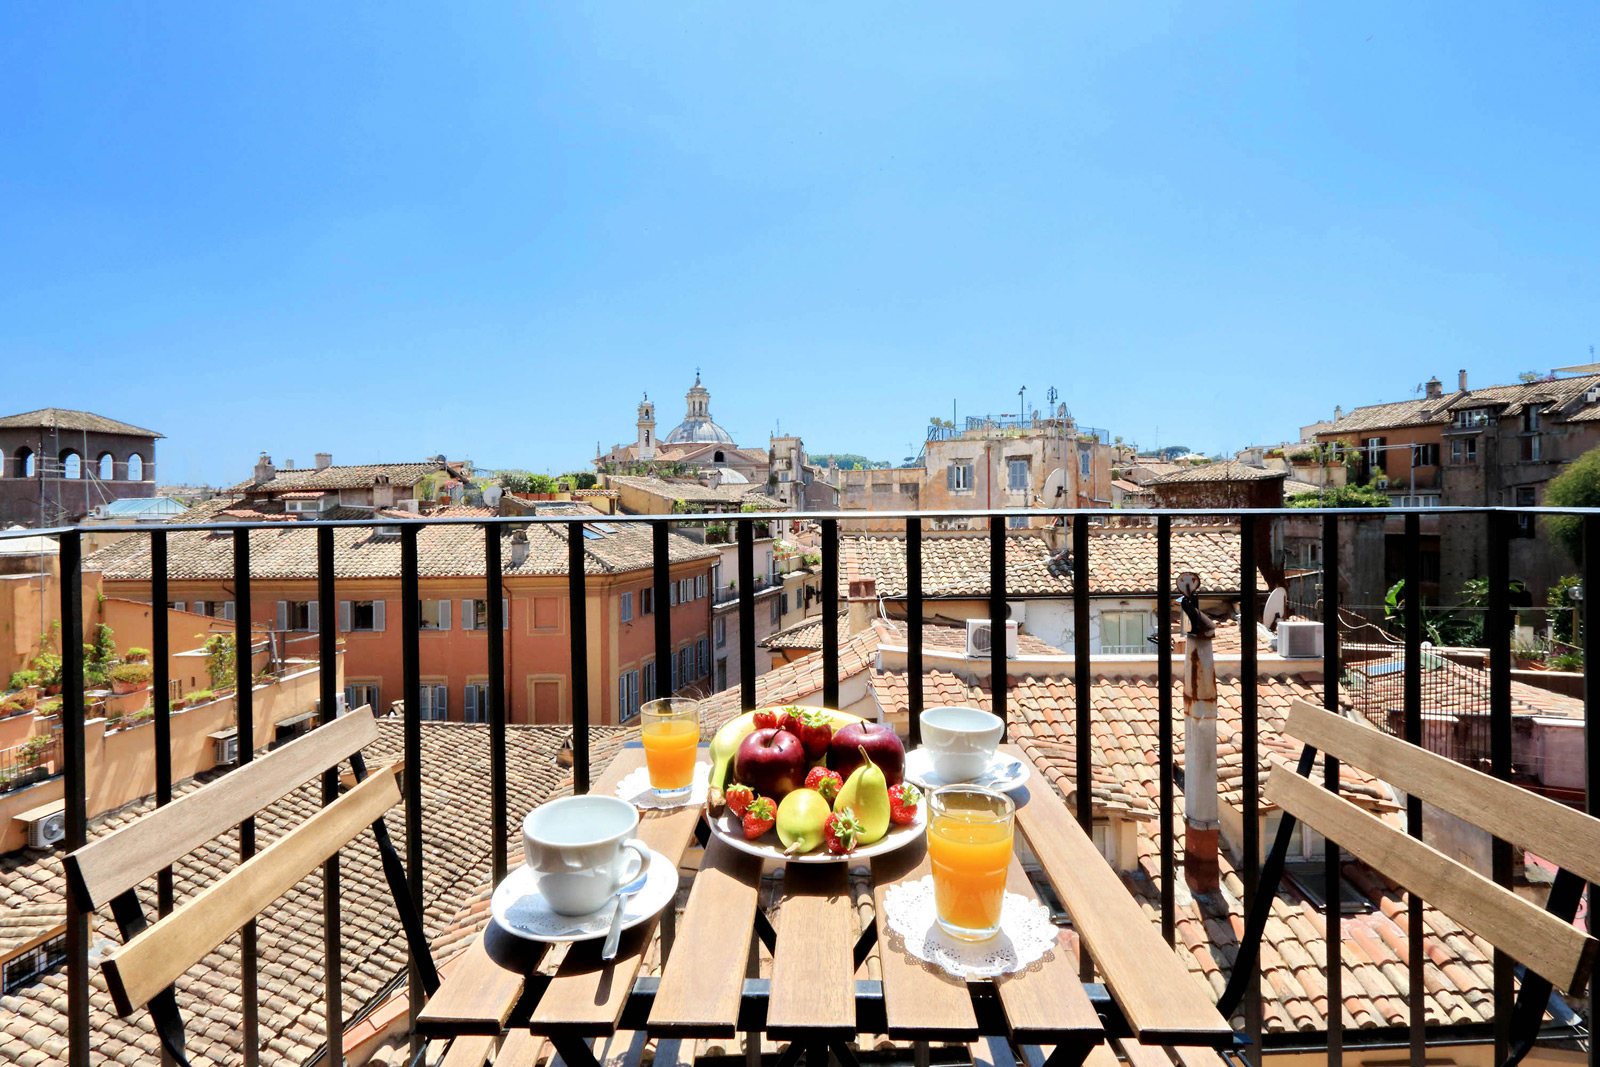 Fotogallerie – B&B Terrazze Navona Roma | Bed and breakfast al ...